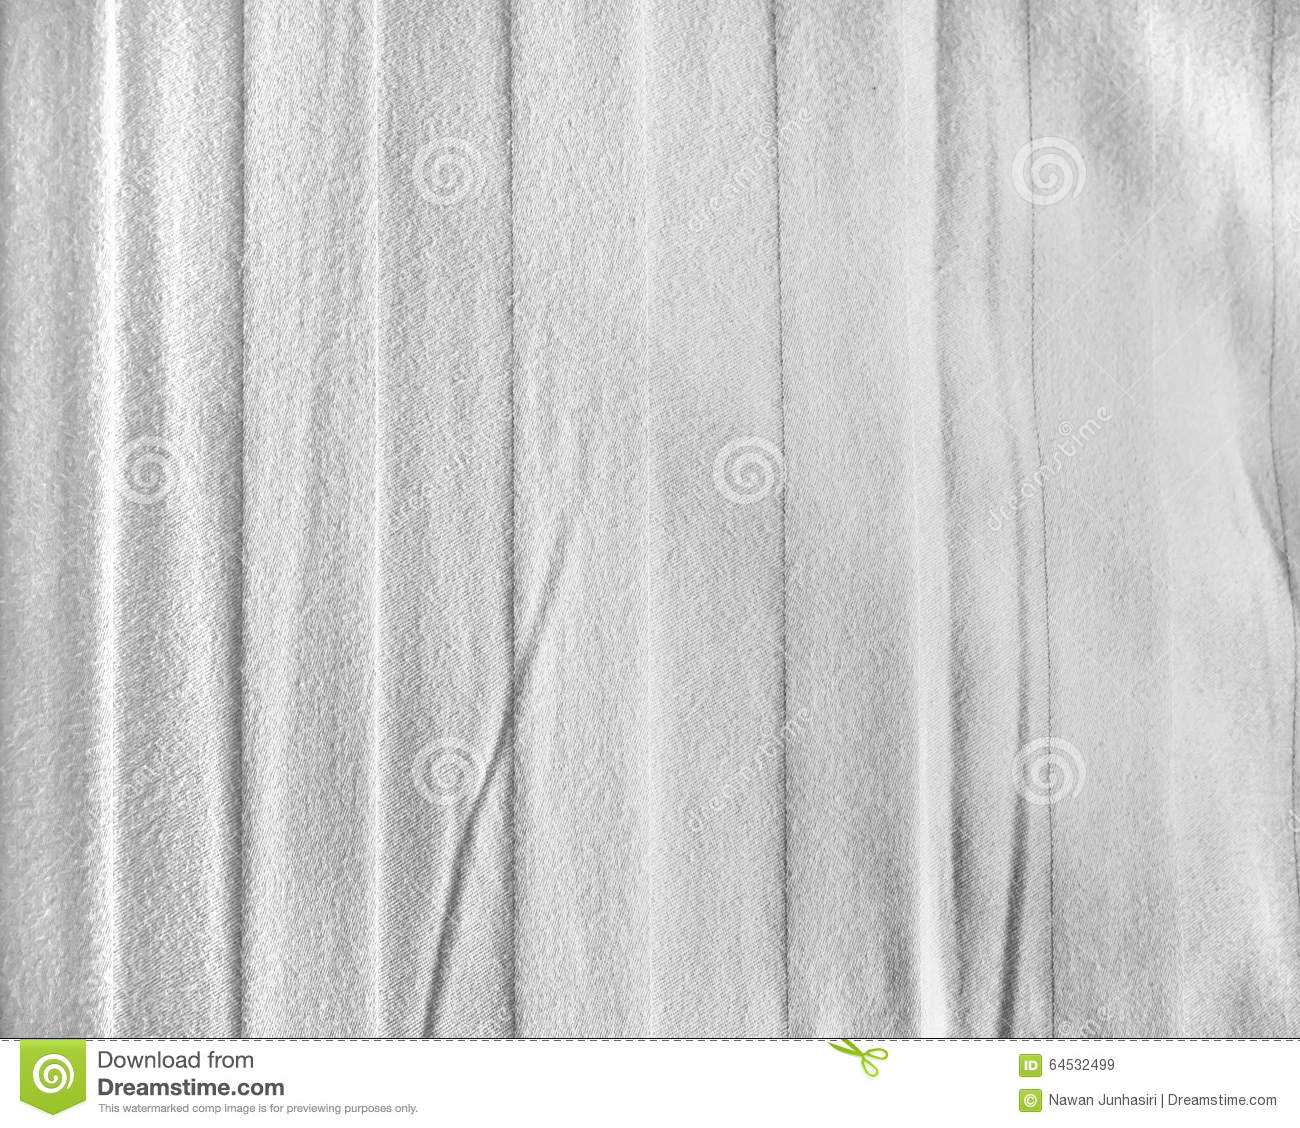 Black and white bed sheets texture - Bed Sheet Texture